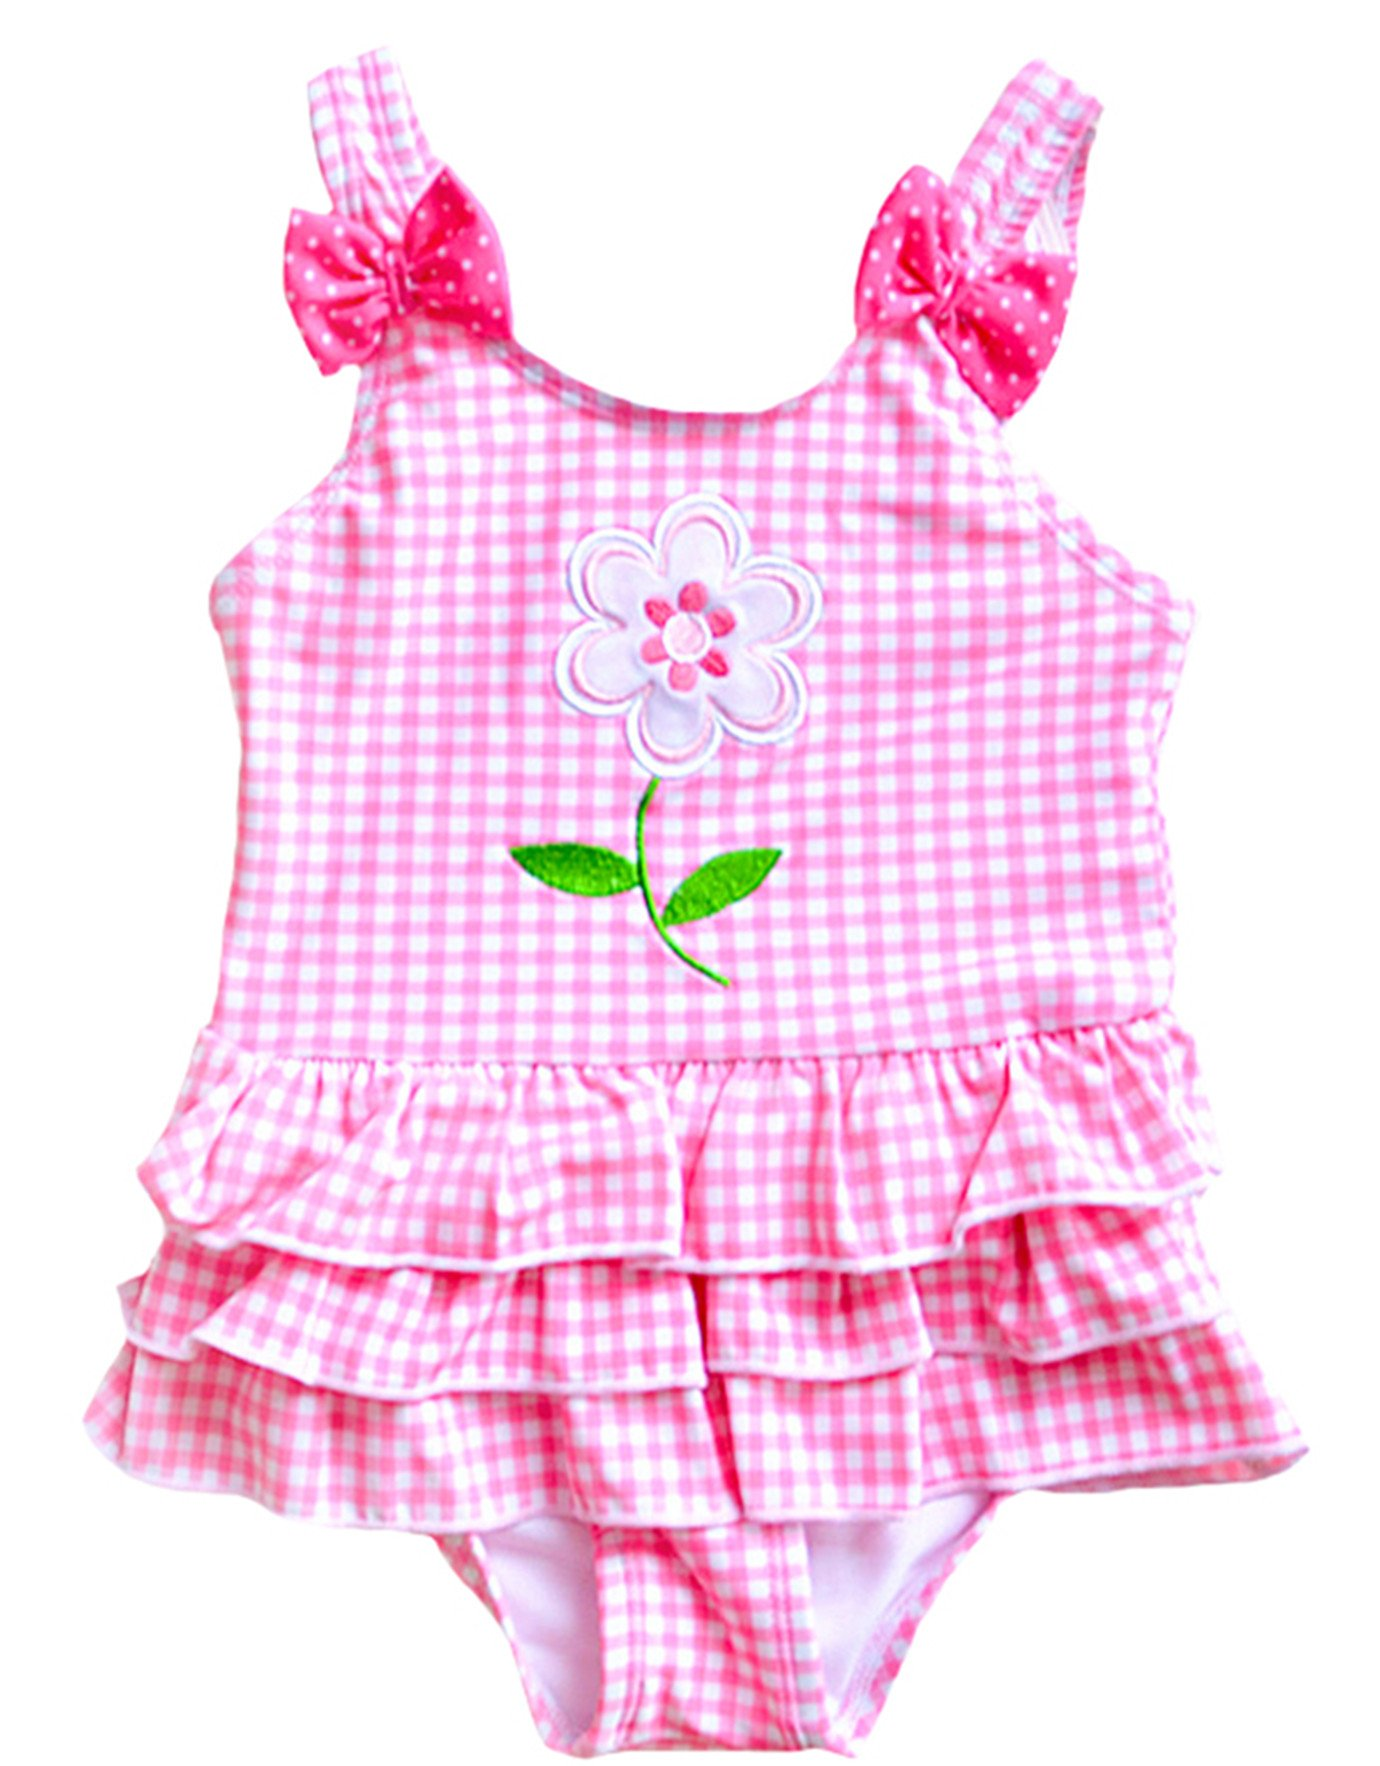 Meeyocc Baby Girls' One Piece Swimsuit UPF 50+ Grid Flower Baby Girls Summer Cute Swimsuit Kids Swimwear Bathing Suit Pink 3-4Y